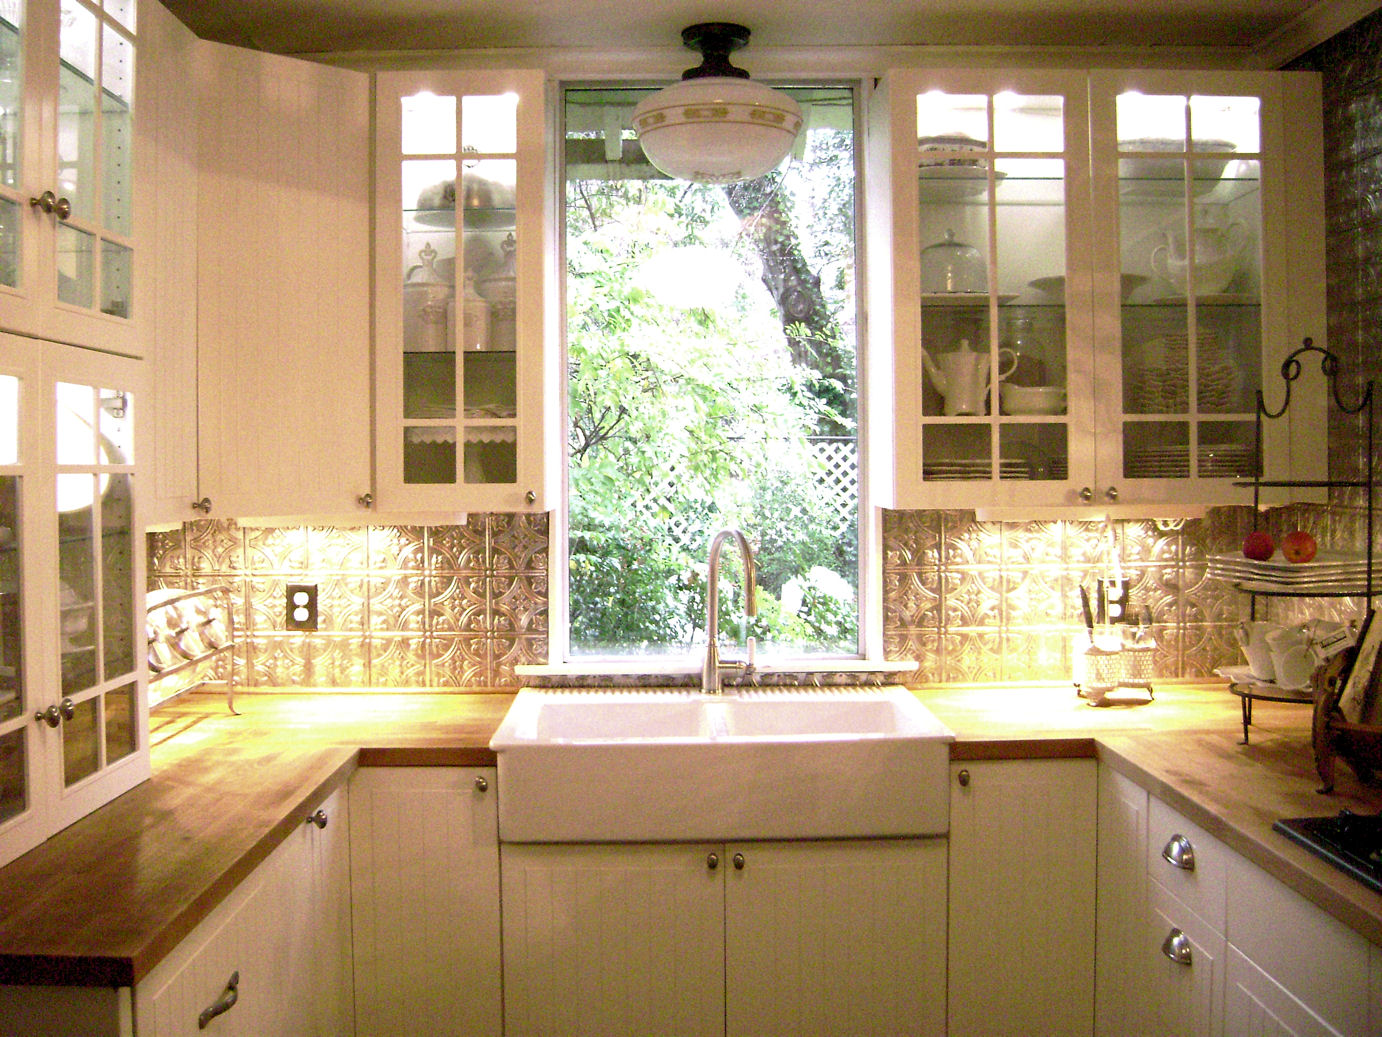 The astounding Glossy white subway tile backsplash kitchen picture